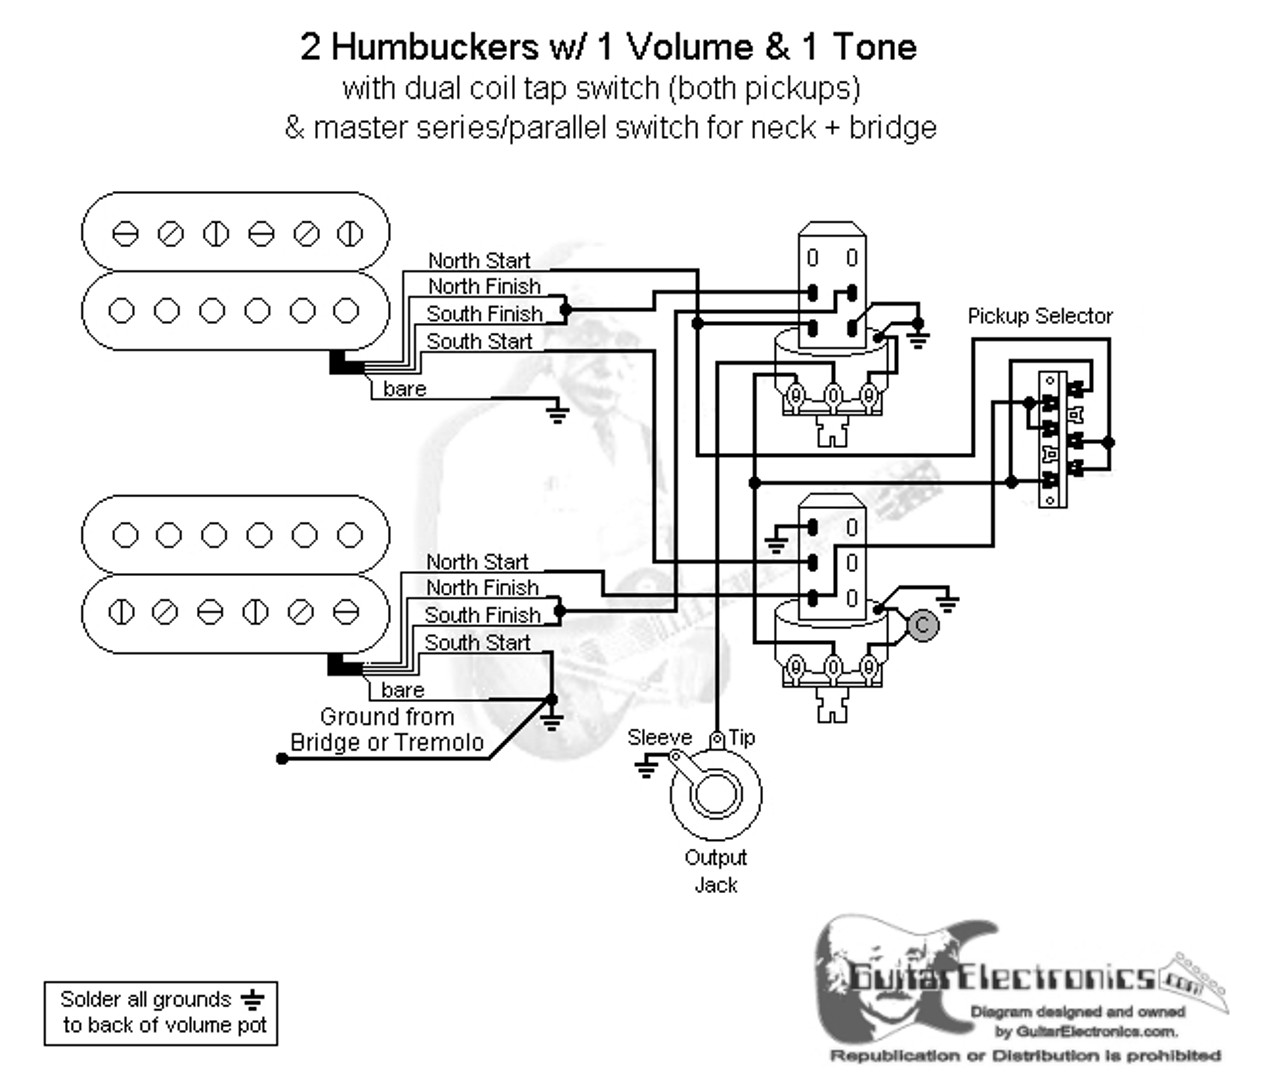 small resolution of 2 hbs 3 way lever 1 vol 1 tone coil tap u0026 series paralleltwo humbucker